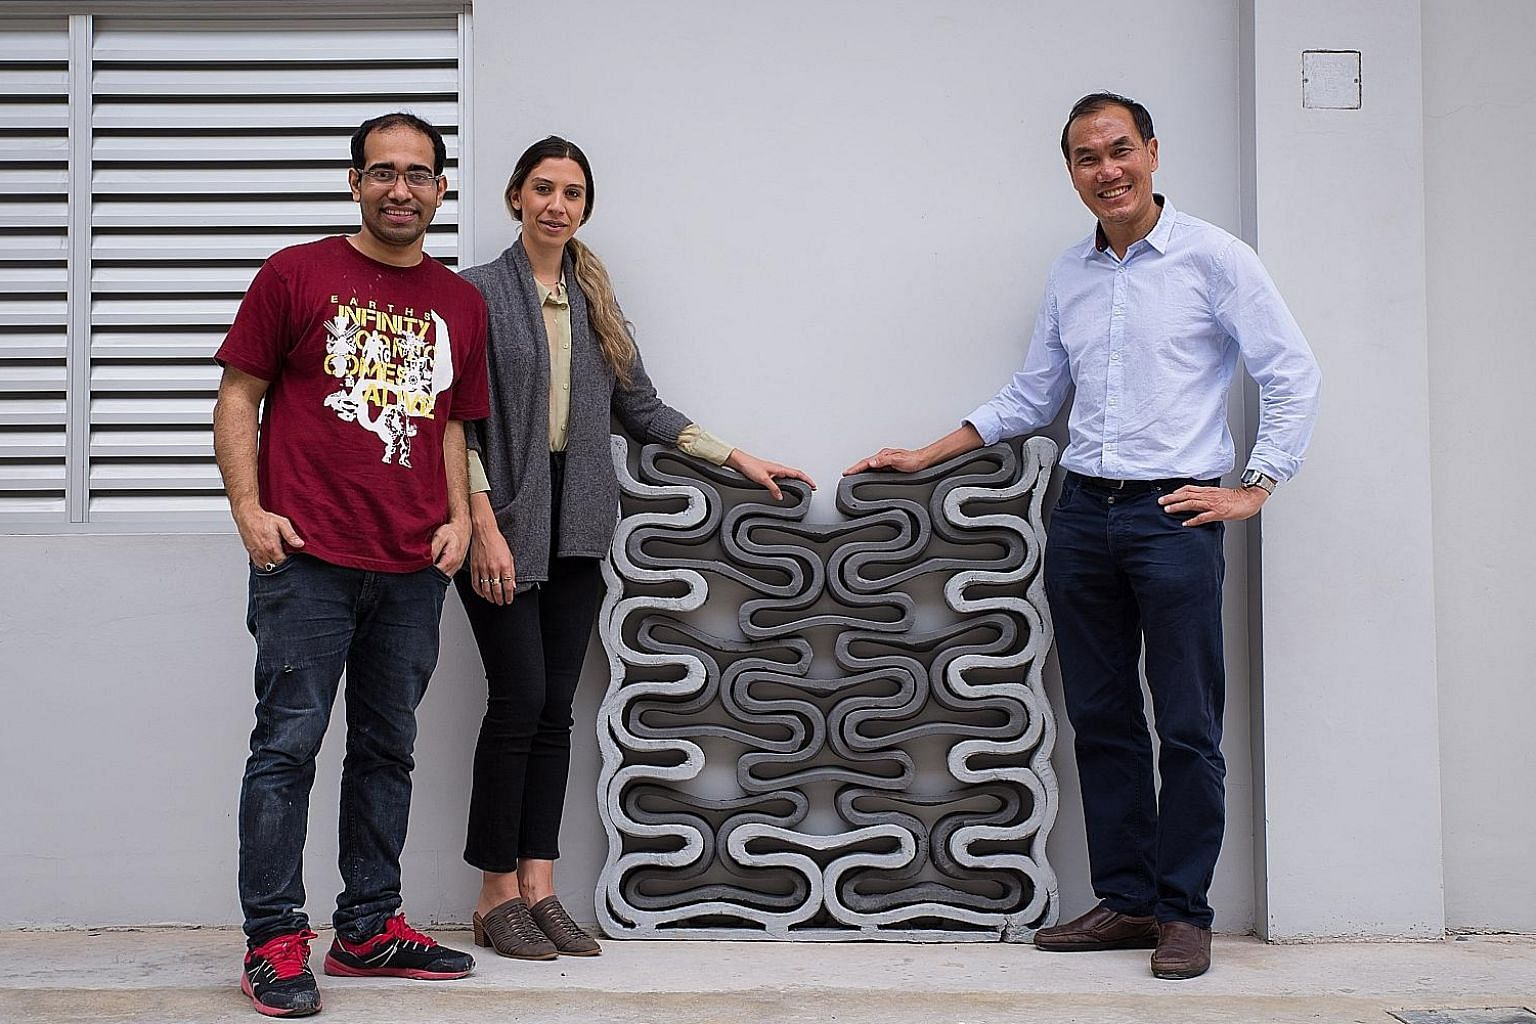 Left: A small-scale version of a squash court whose walls are 3D-printed using a material comprising fly ash, a by-product from coal burning. Above (from left): NTU PhD student Panda Biranchi Narayan, research associate Catherine Soderberg and Associ